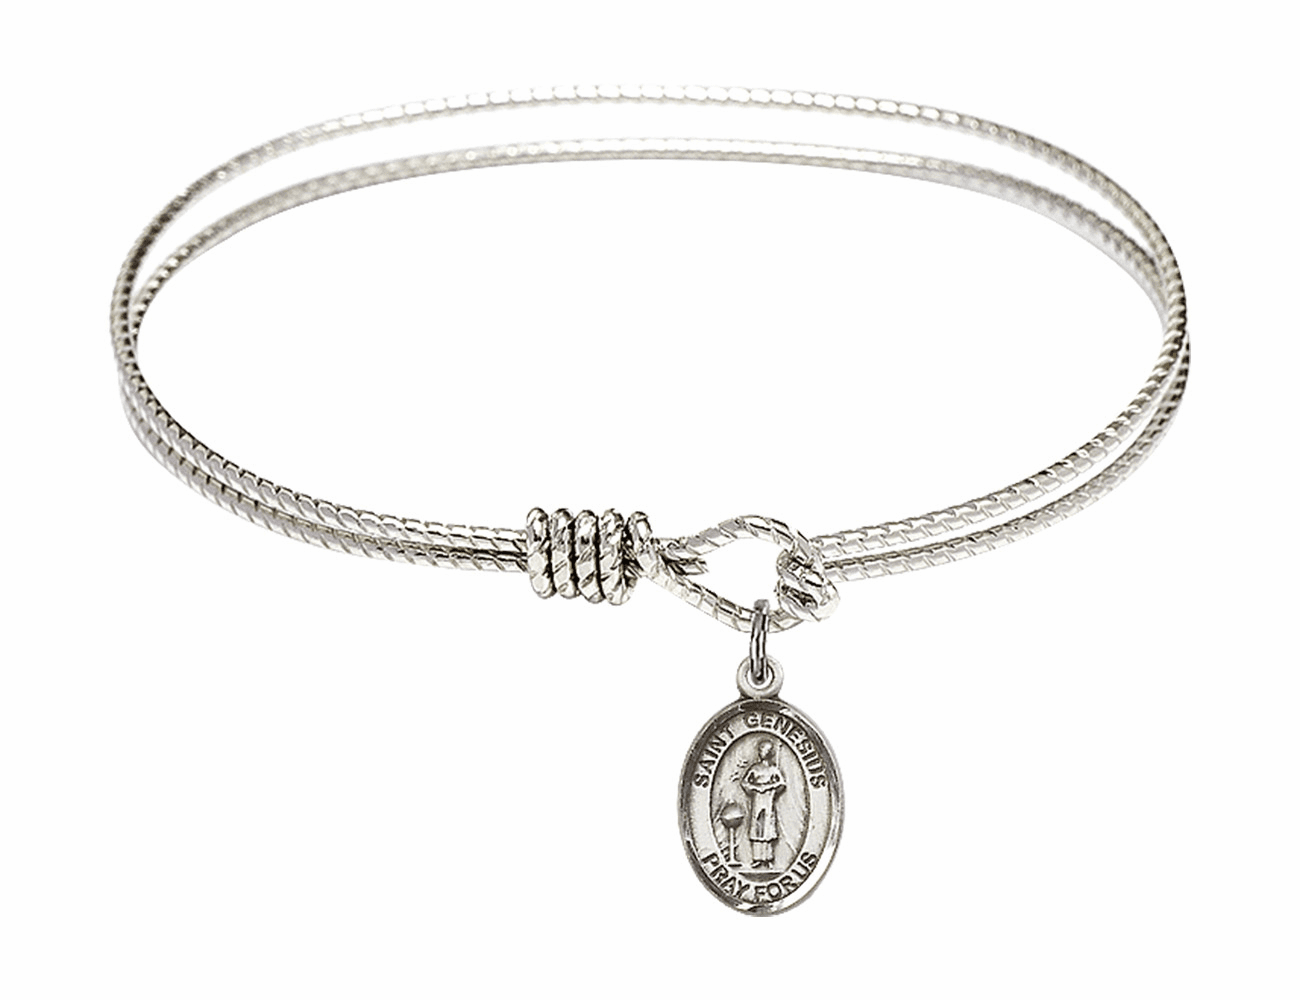 St Genesius of Rome Textured Bangle w/Sterling Charm Bracelet by Bliss